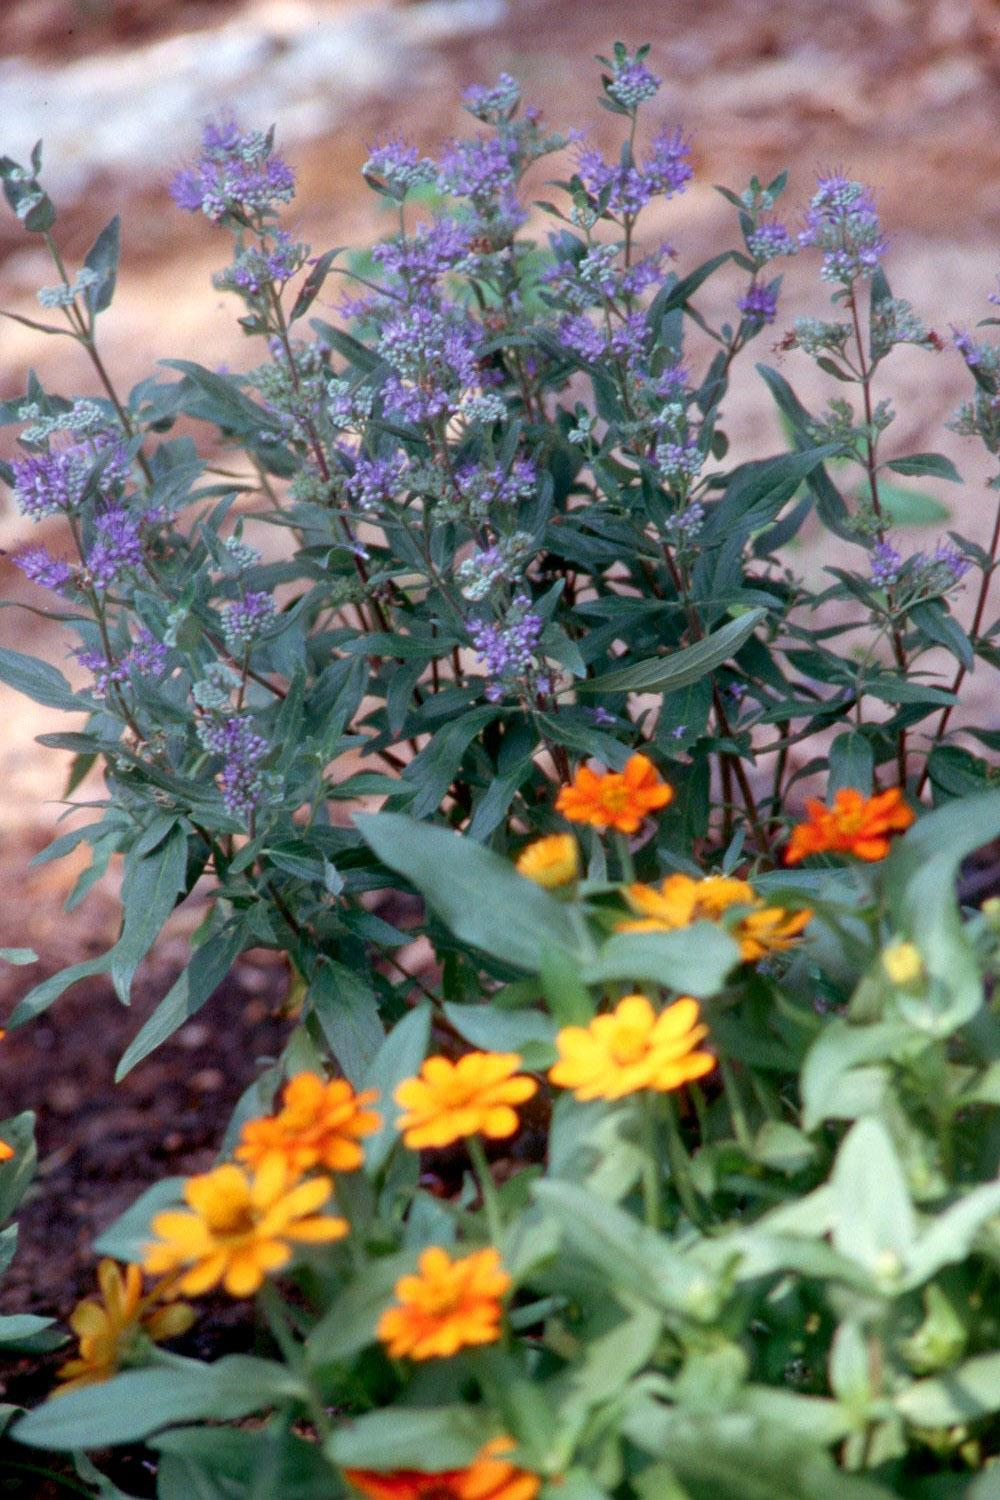 Caryopteris Or Bluebeard Is Outstanding In Gardens Mississippi